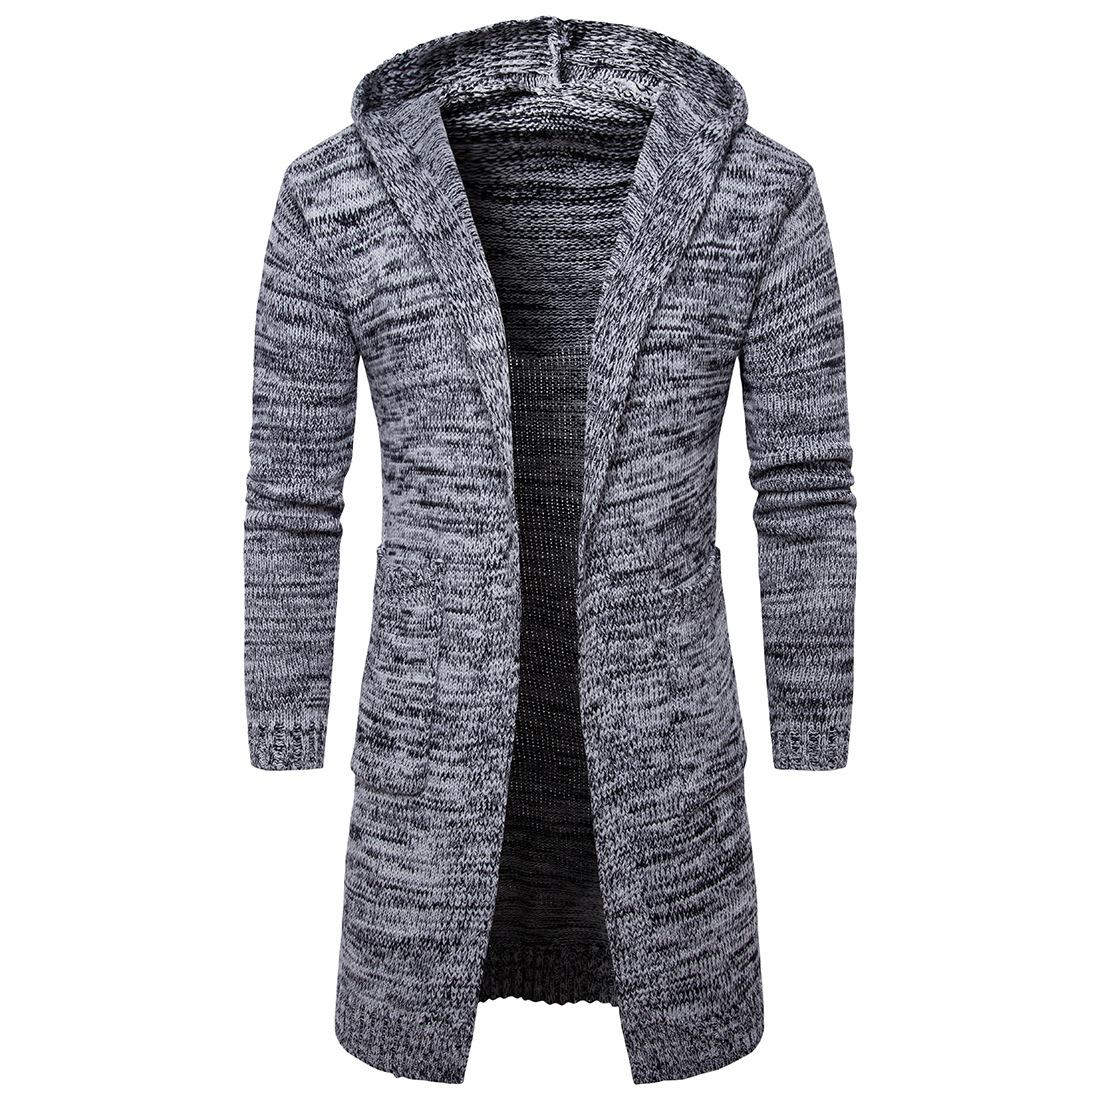 2017 New Men's Thick Hooded Cardigan Sweater Coat Fashion Trend in ...